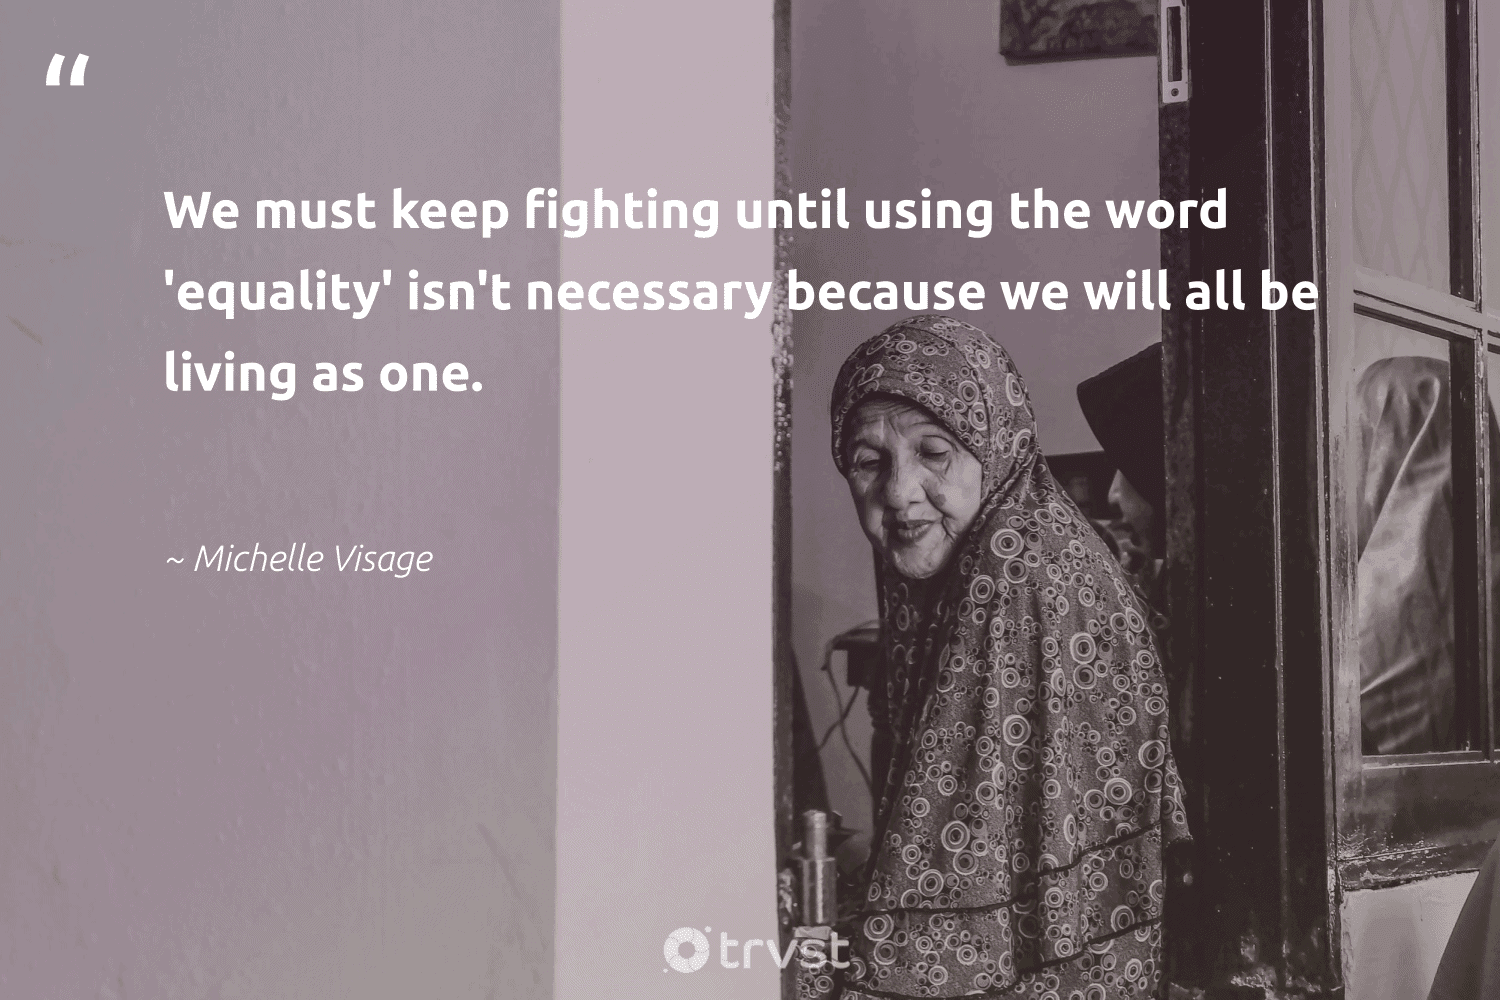 """""""We must keep fighting until using the word 'equality' isn't necessary because we will all be living as one.""""  - Michelle Visage #trvst #quotes #equality #equalopportunity #weareallone #makeadifference #socialchange #equalrights #giveback #bethechange #dosomething #standup"""